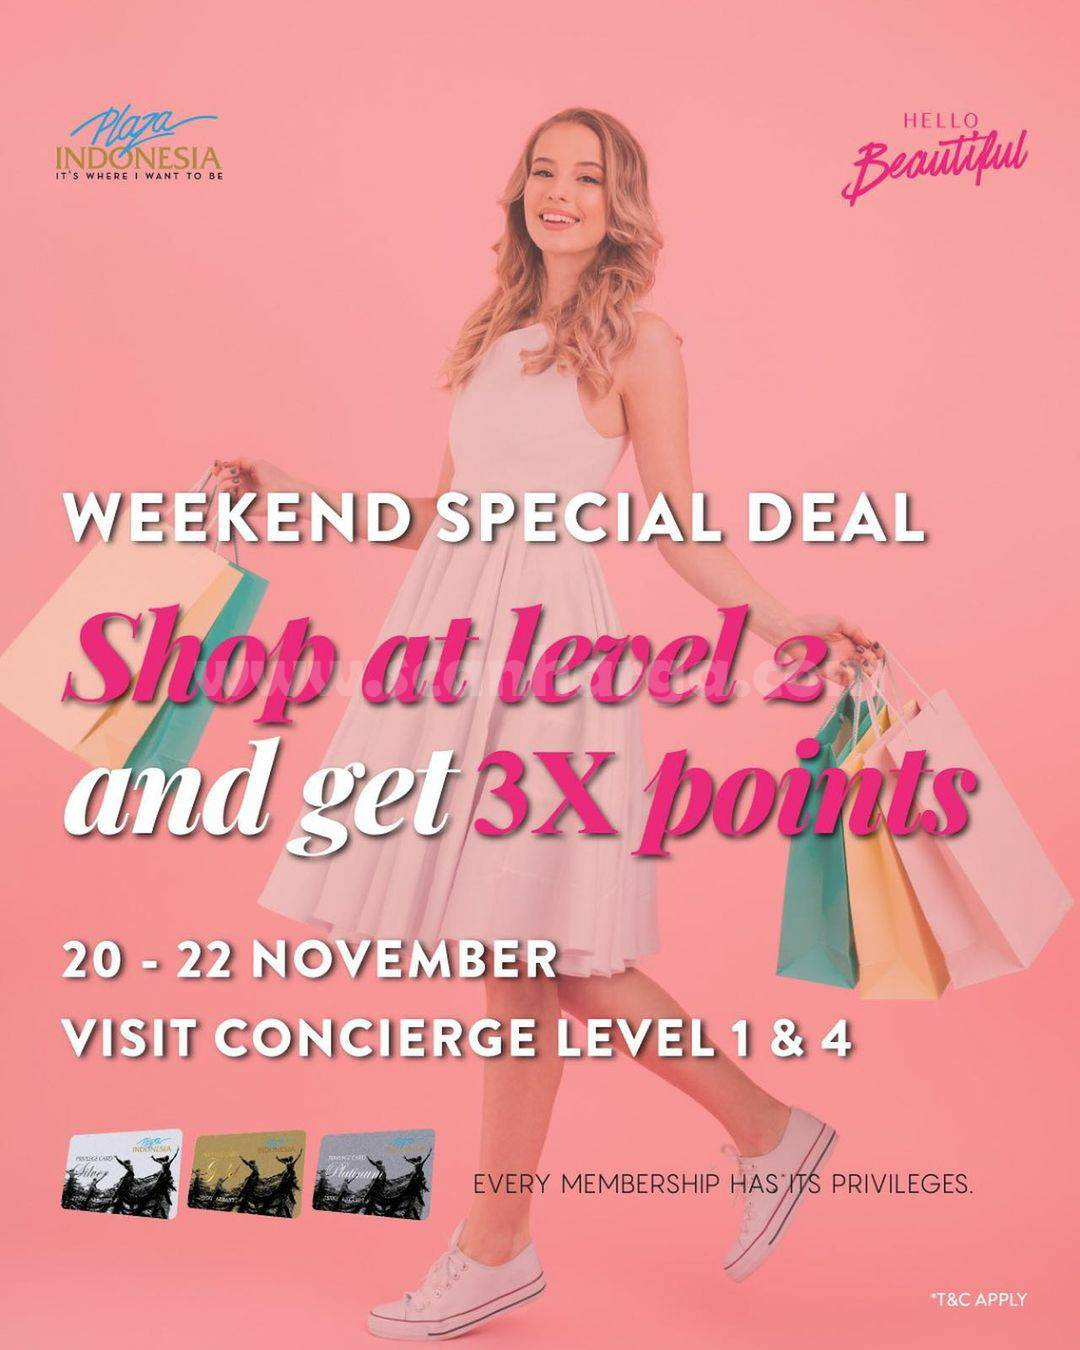 Plaza Indonesia Weekend Special Deal